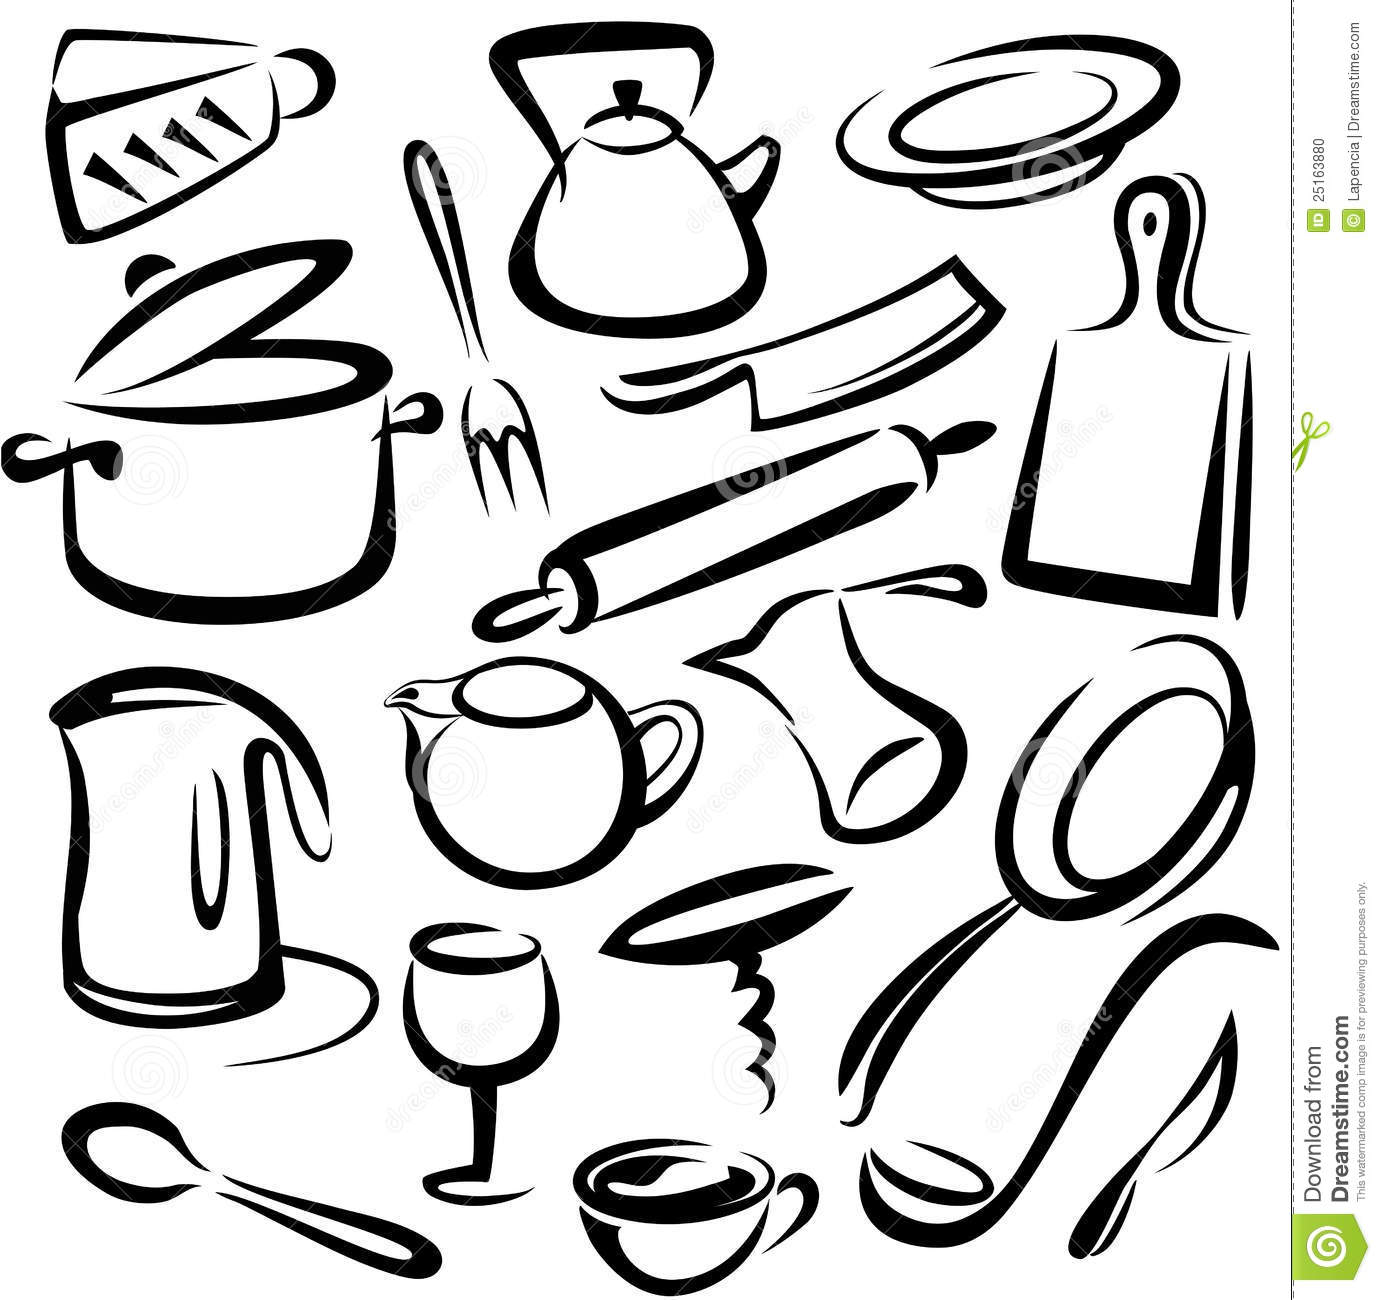 Coloring pages kitchen - Kitchen Tools Coloring Page For Kids Nivucolorhd